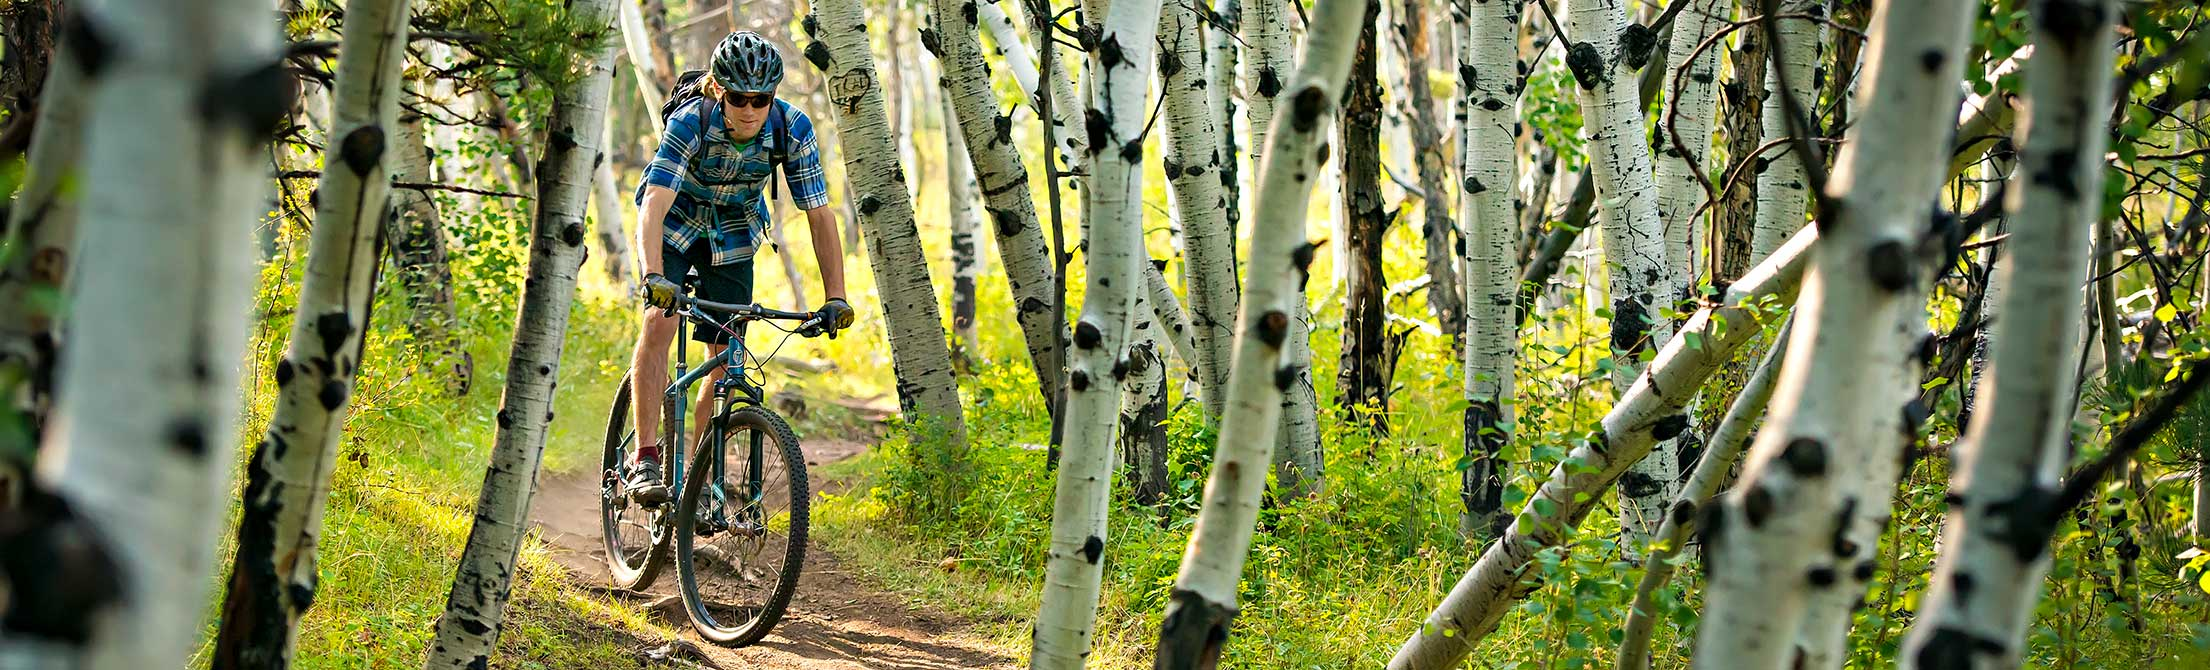 Mountain Bike rider at Curt Gowdy State Park